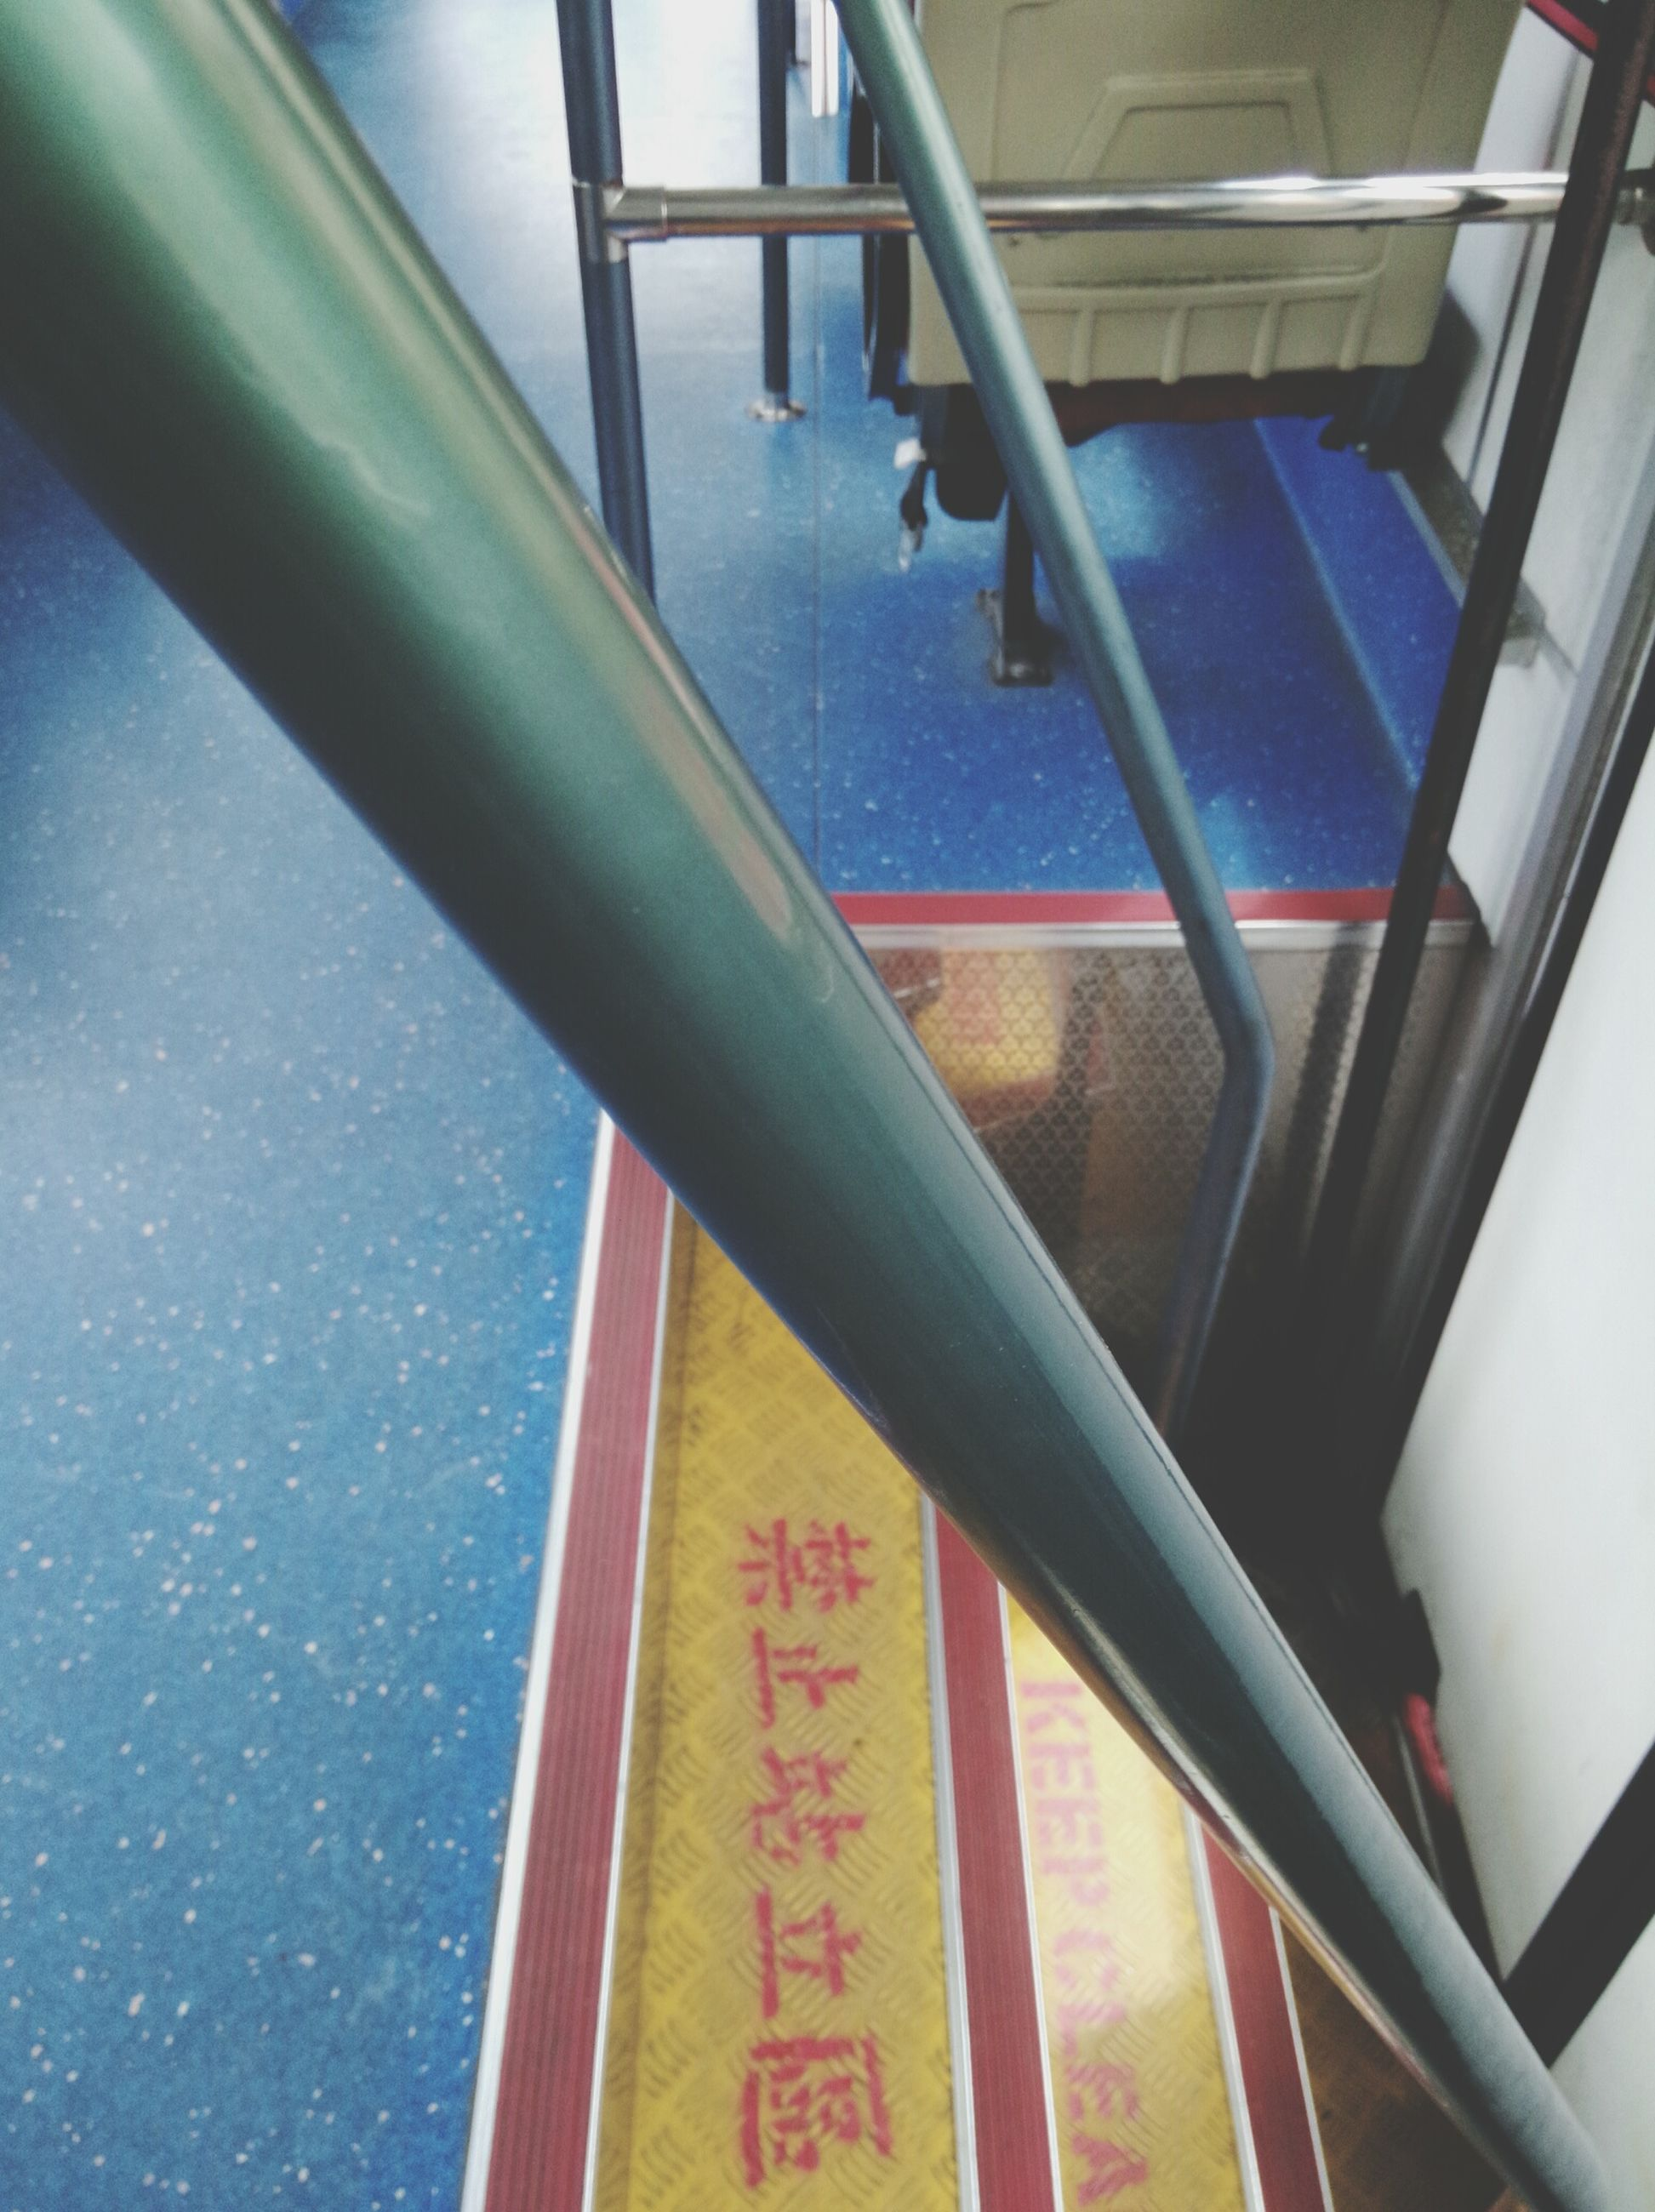 indoors, railing, built structure, architecture, metal, high angle view, day, window, no people, metallic, sunlight, blue, close-up, part of, pattern, transportation, low angle view, glass - material, cropped, steps